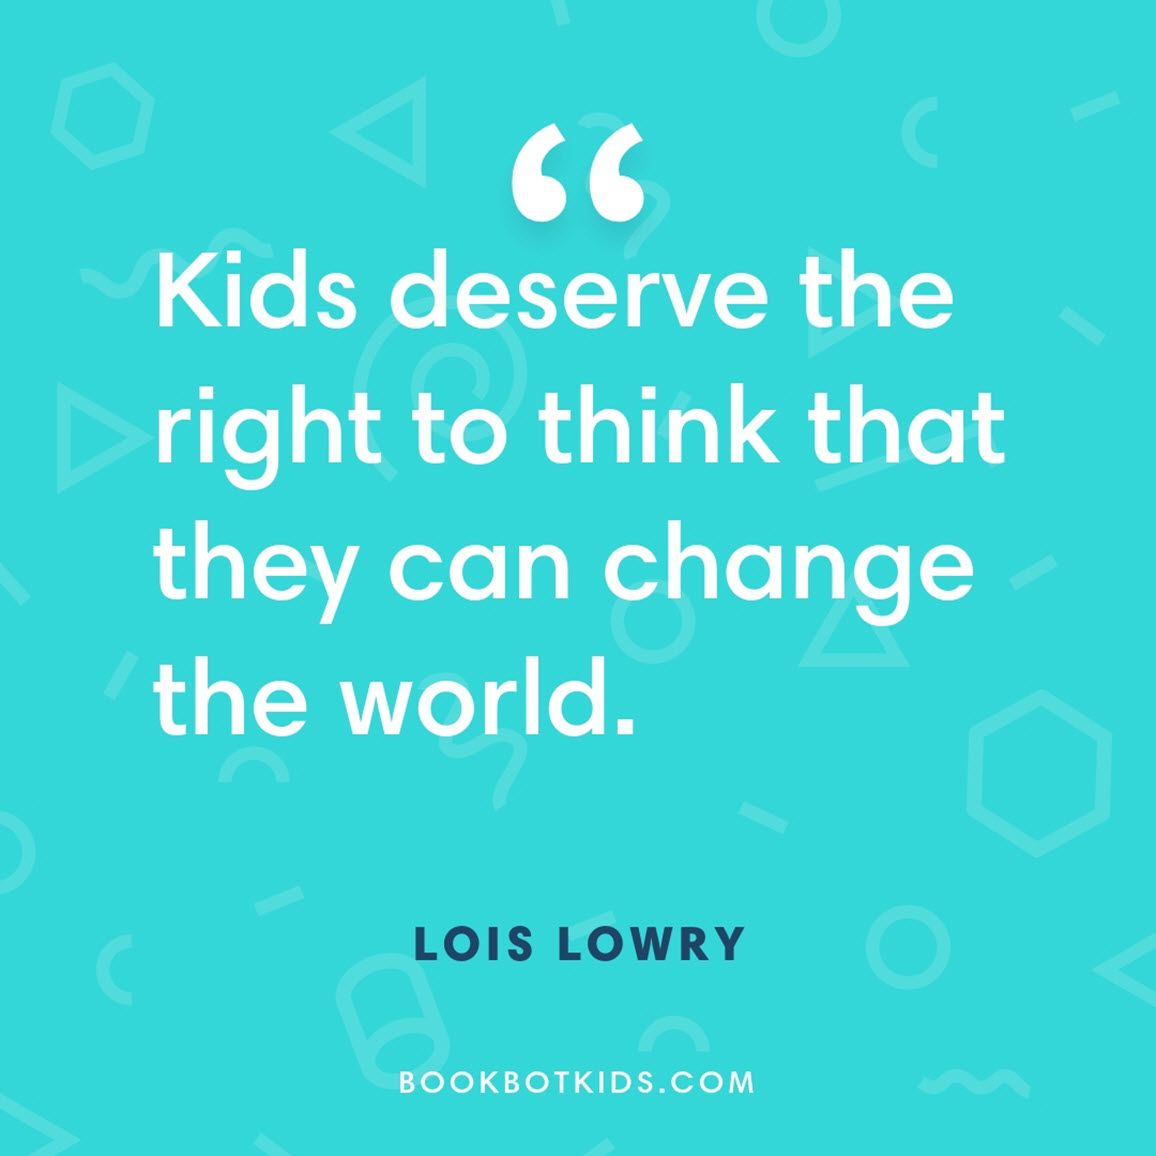 Kids deserve the right to think that they can change the world. – Lois Lowry